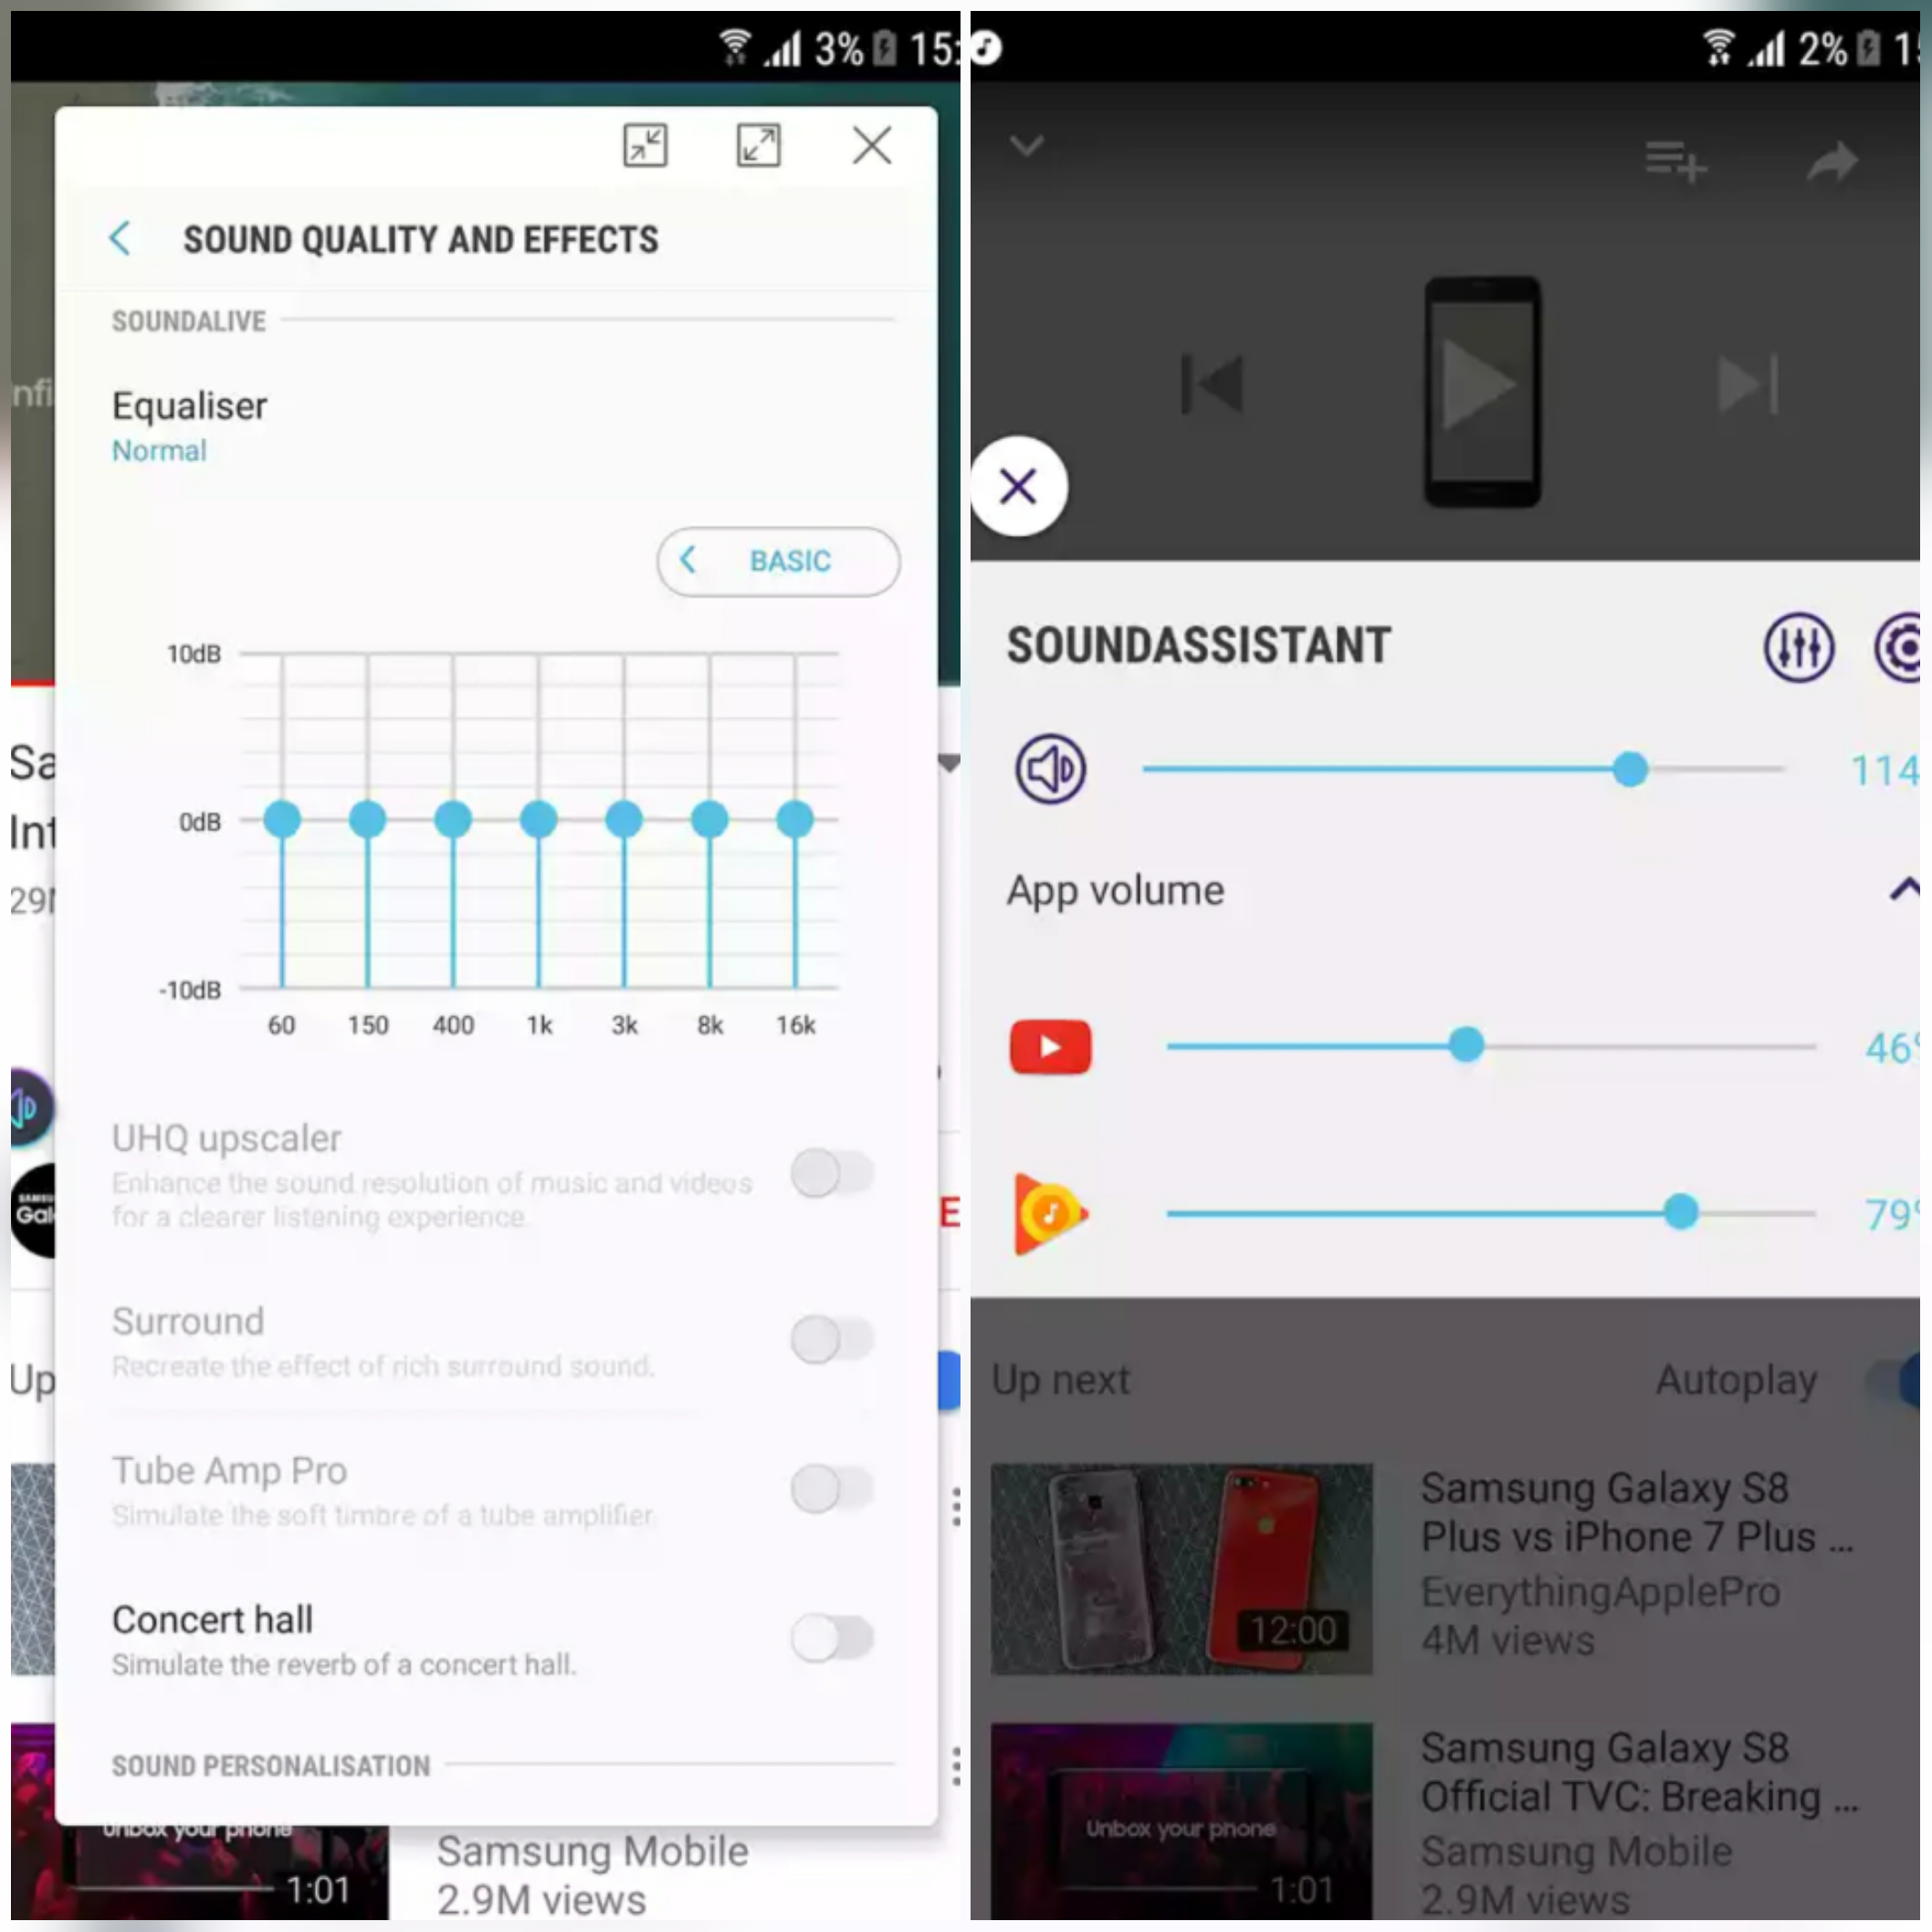 How To Control Samsung Galaxy Sound With New SoundAssistant App